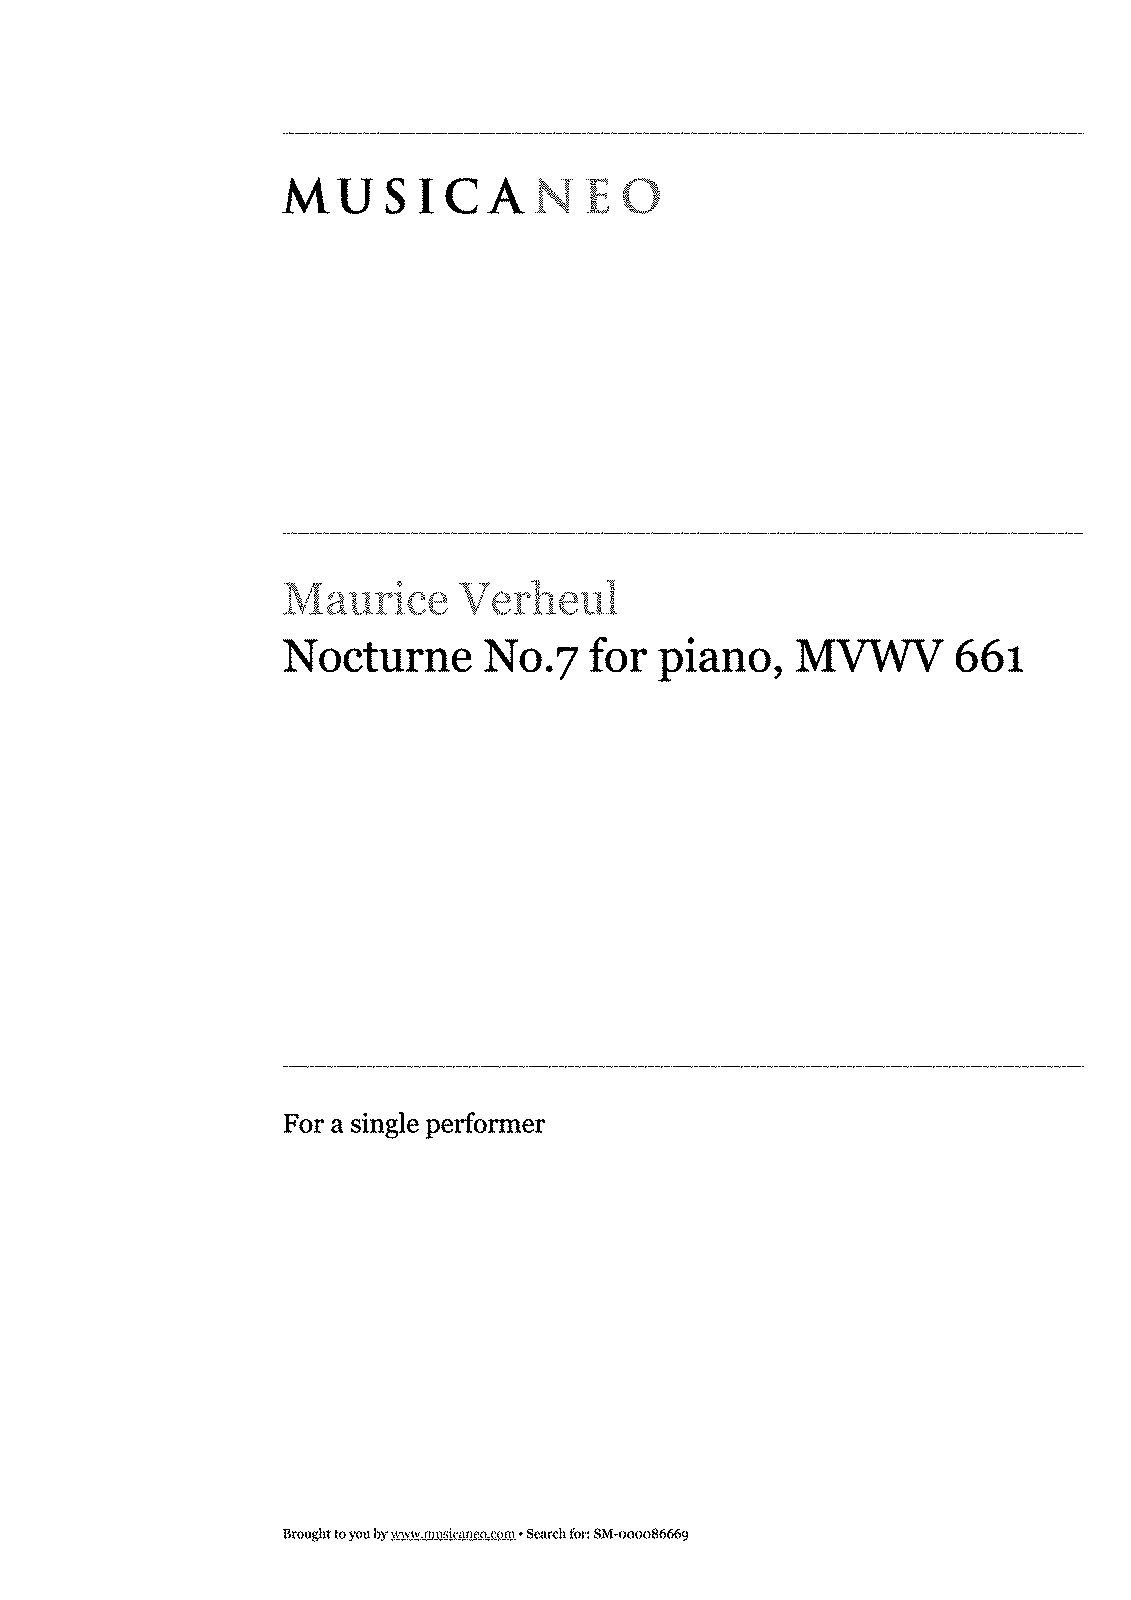 PMLP717120-nocturne no 7 for piano mvwv 661.pdf